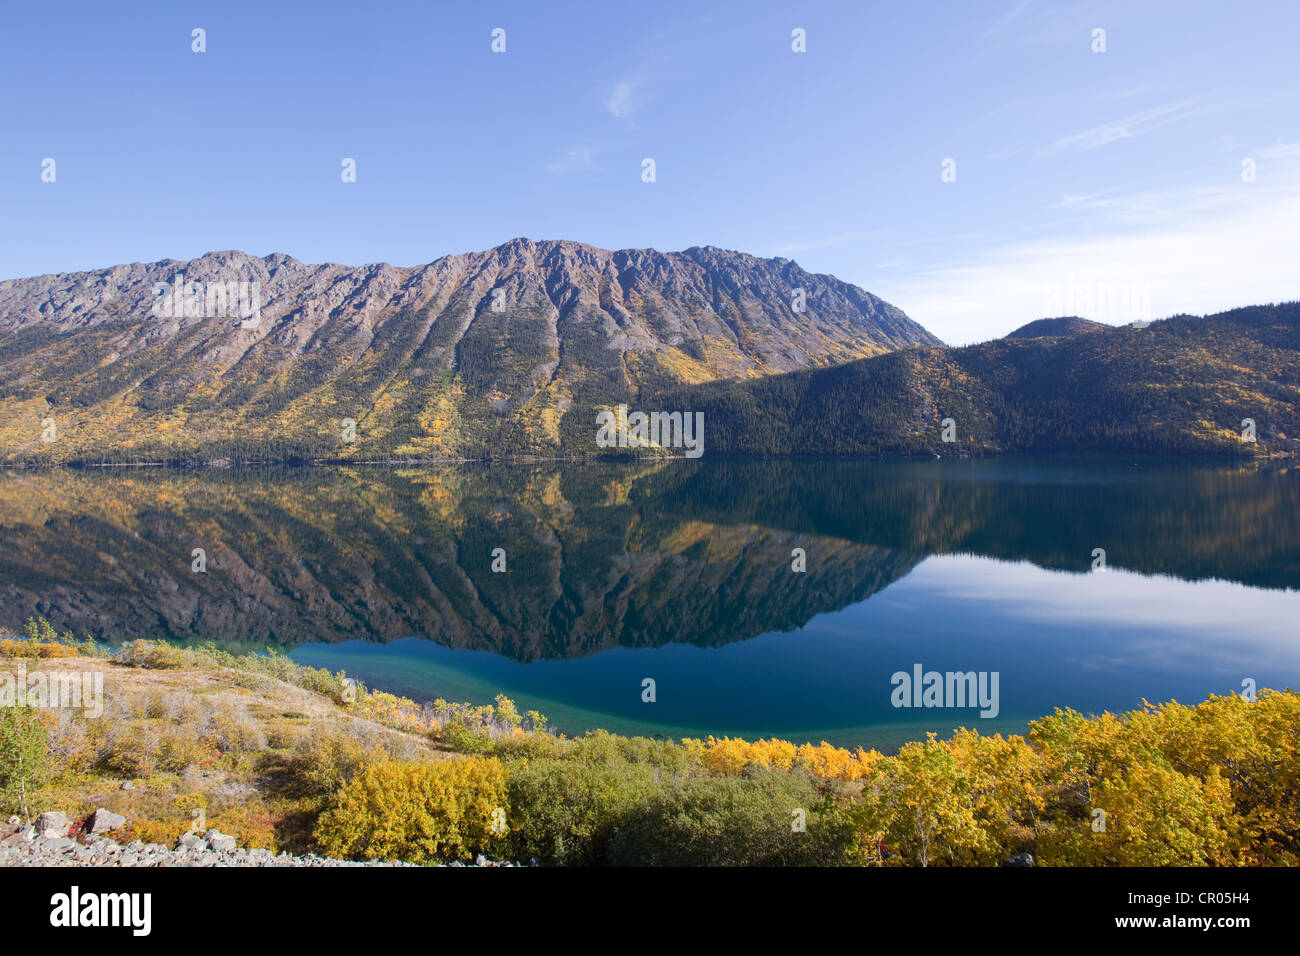 Calm windy arm of Tagish Lake, reflections, Escarment Mountain, Tagish Highland behind, autumn, Indian Summer - Stock Image